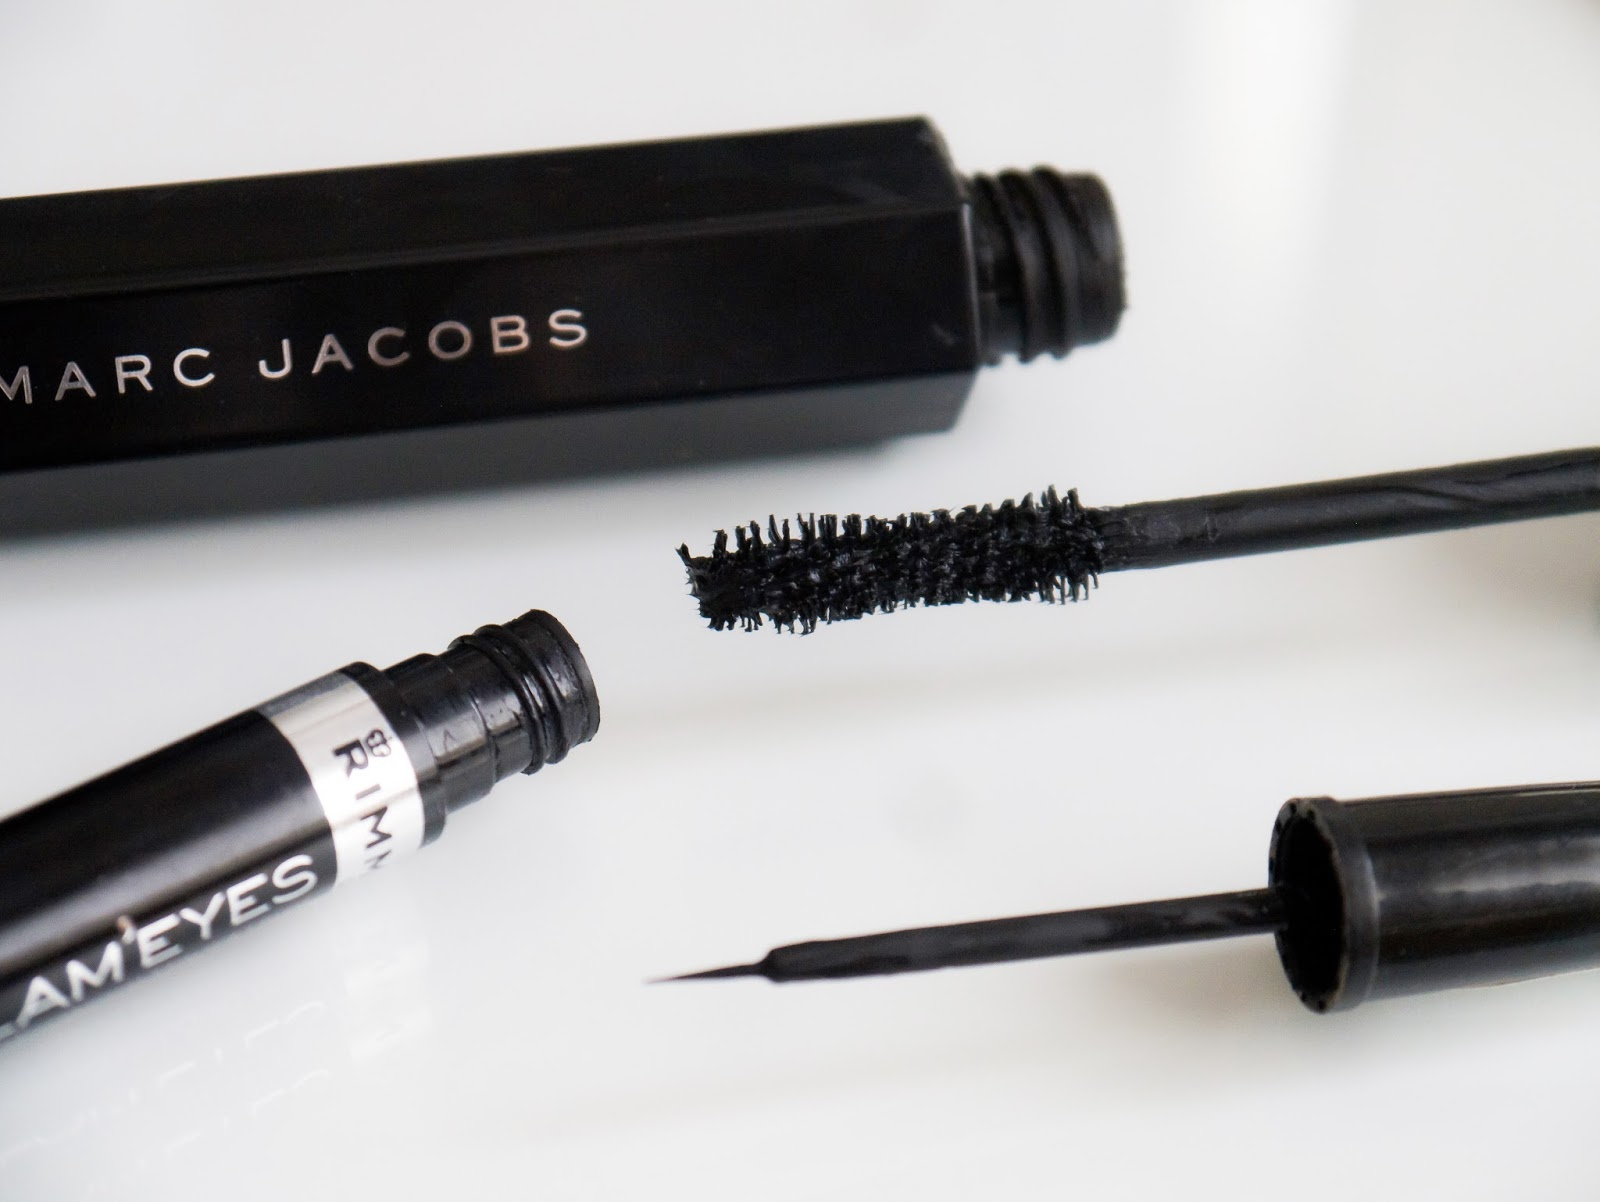 Marc Jacobs Velvet noir mascara Rimmel glam eyes liquid liner